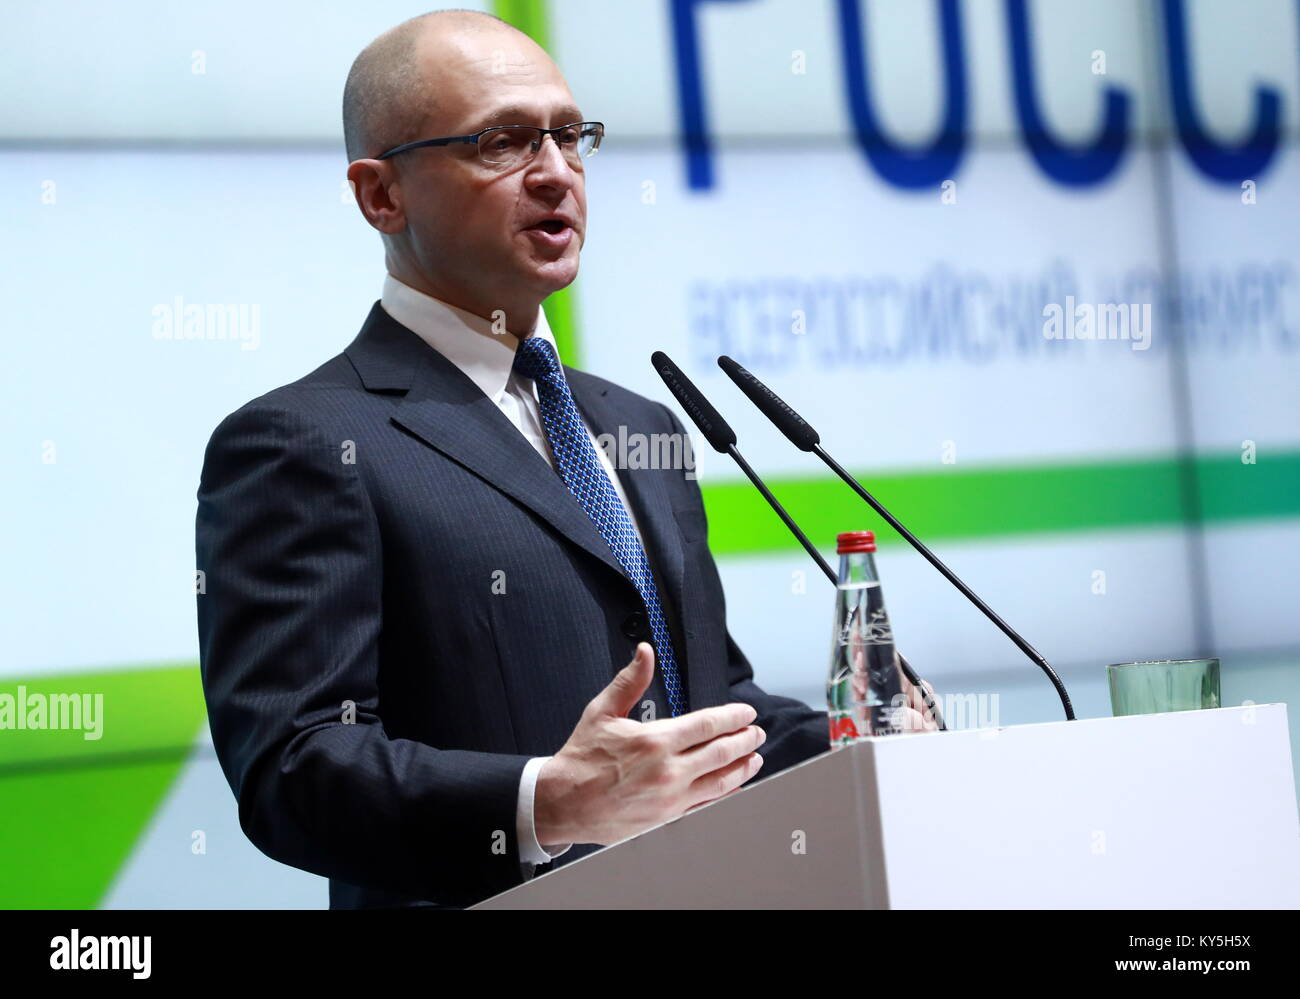 Moscow, Russia. 13th Jan, 2018. First Deputy Chief of Staff of the Russian Presidential Executive Office, Sergei - Stock Image